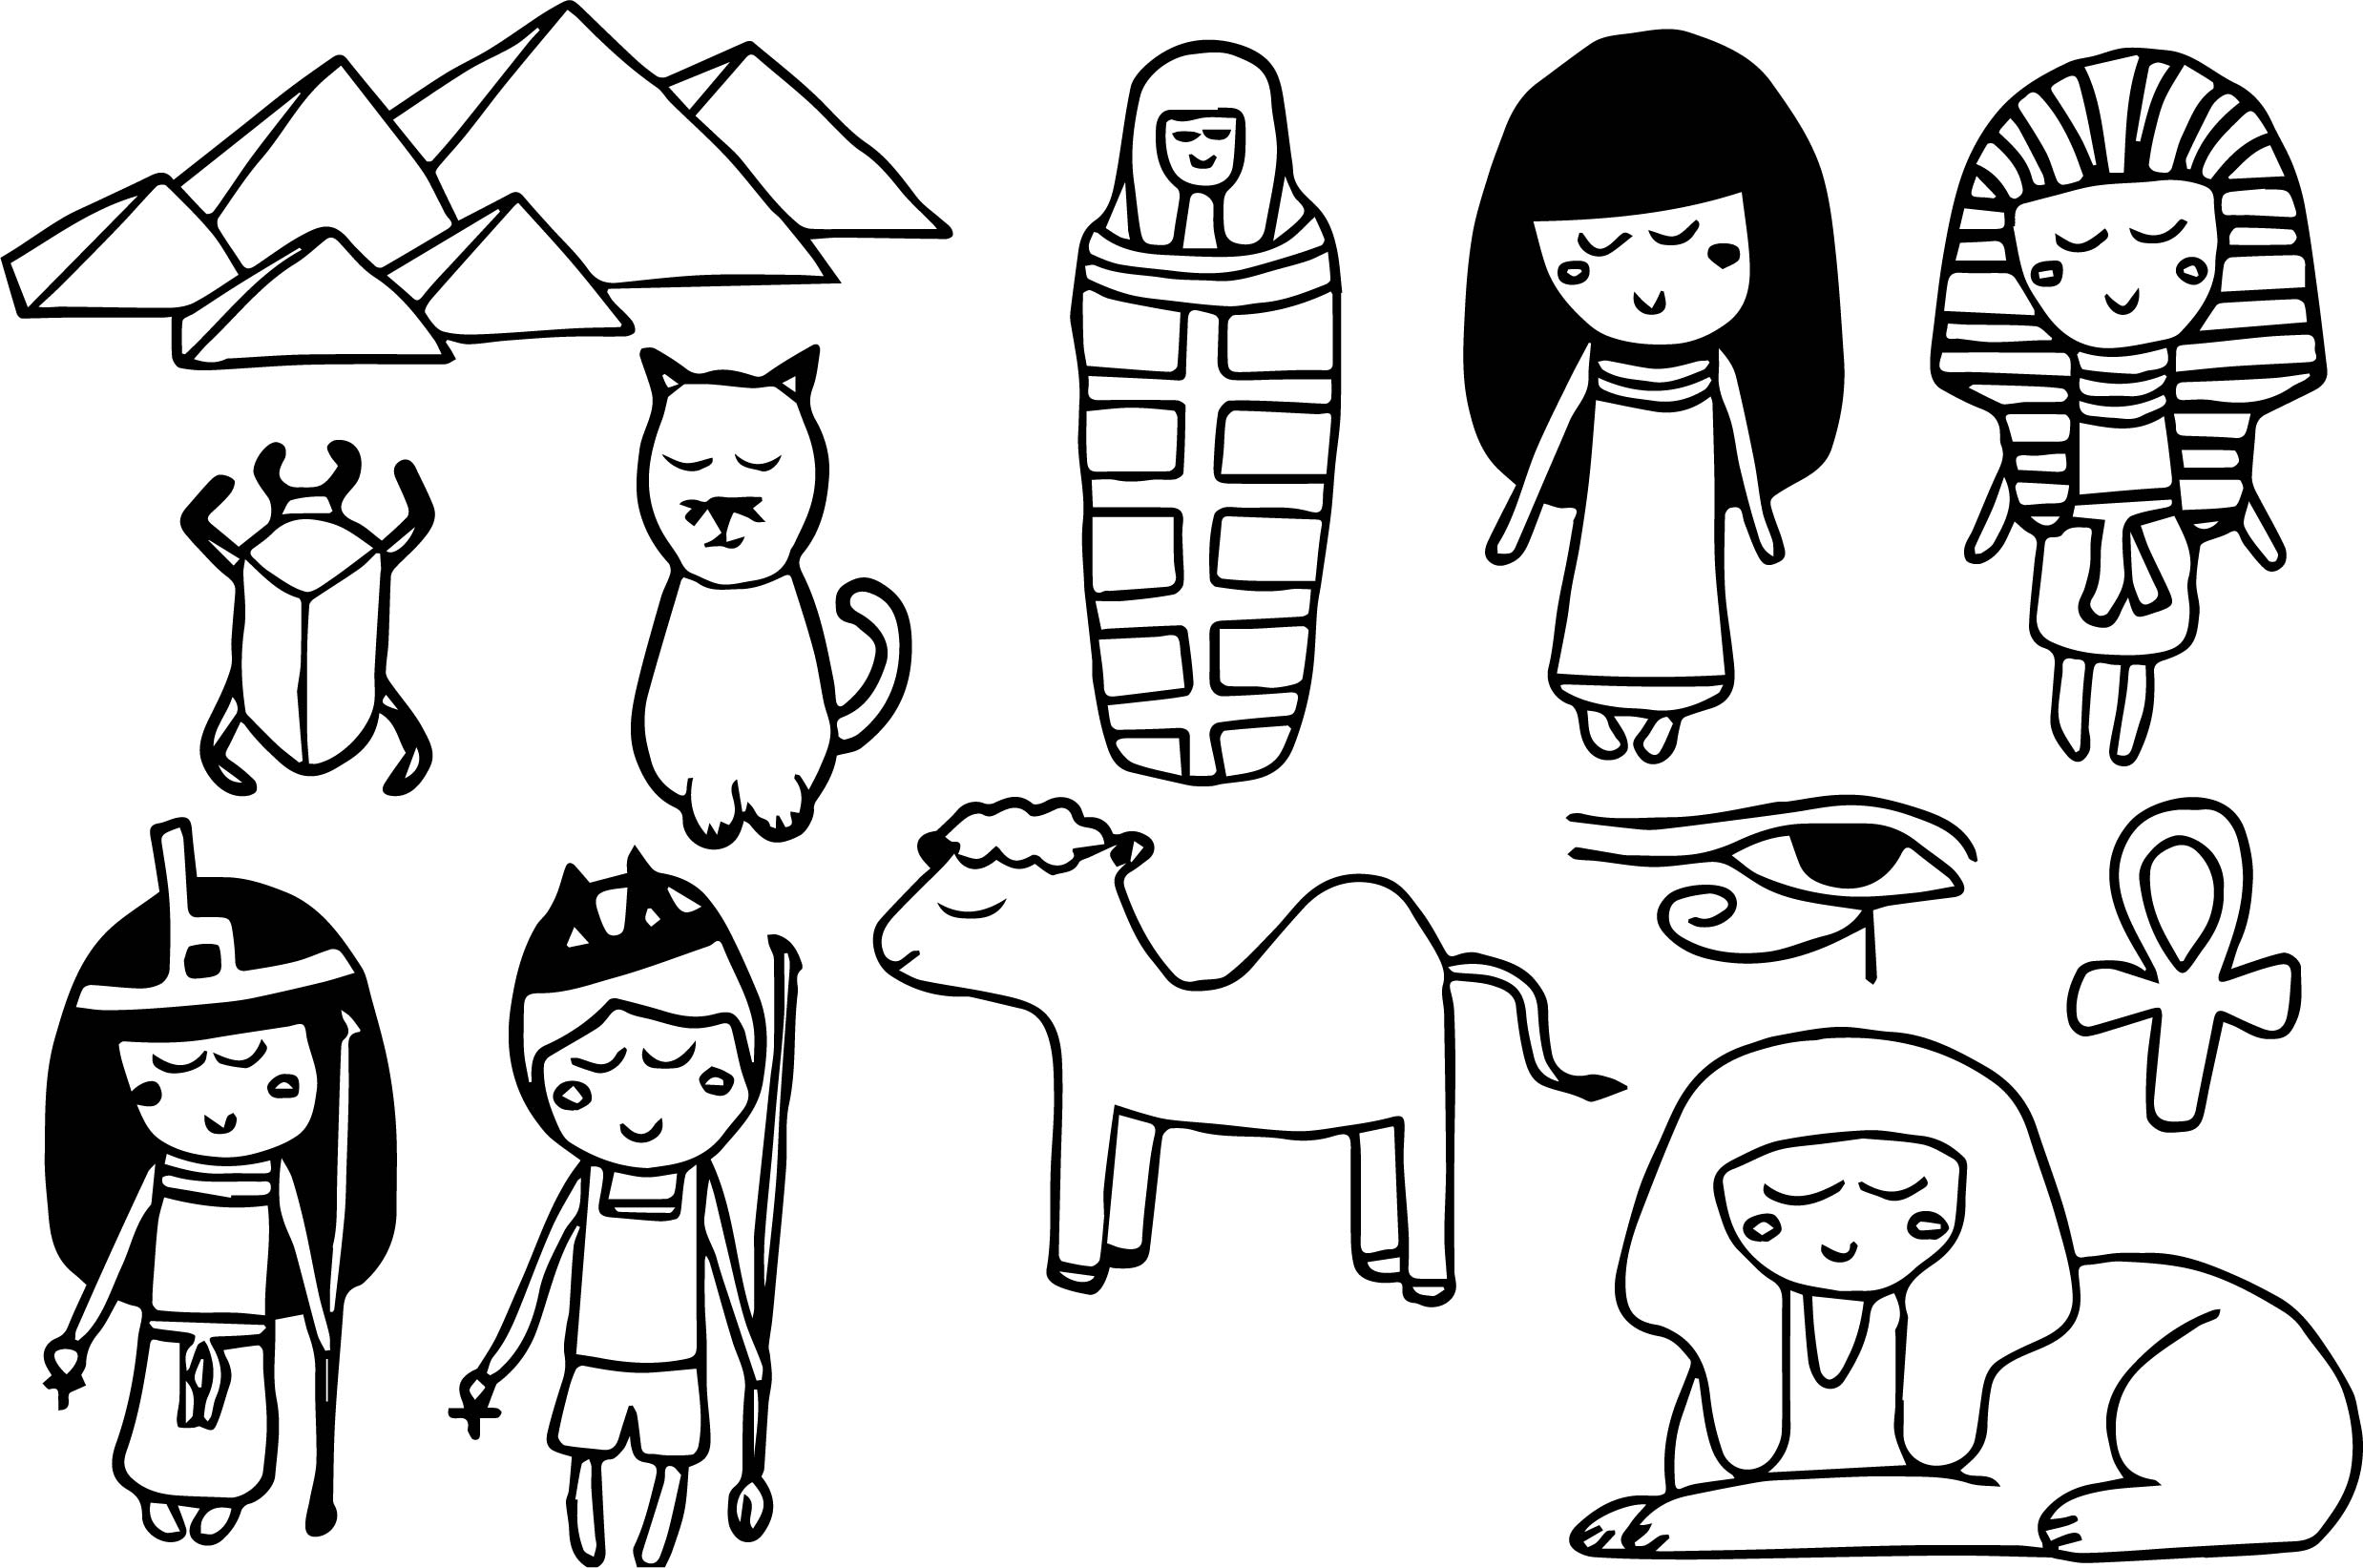 Ancient Egypt Kids Set Coloring Page | Wecoloringpage.com